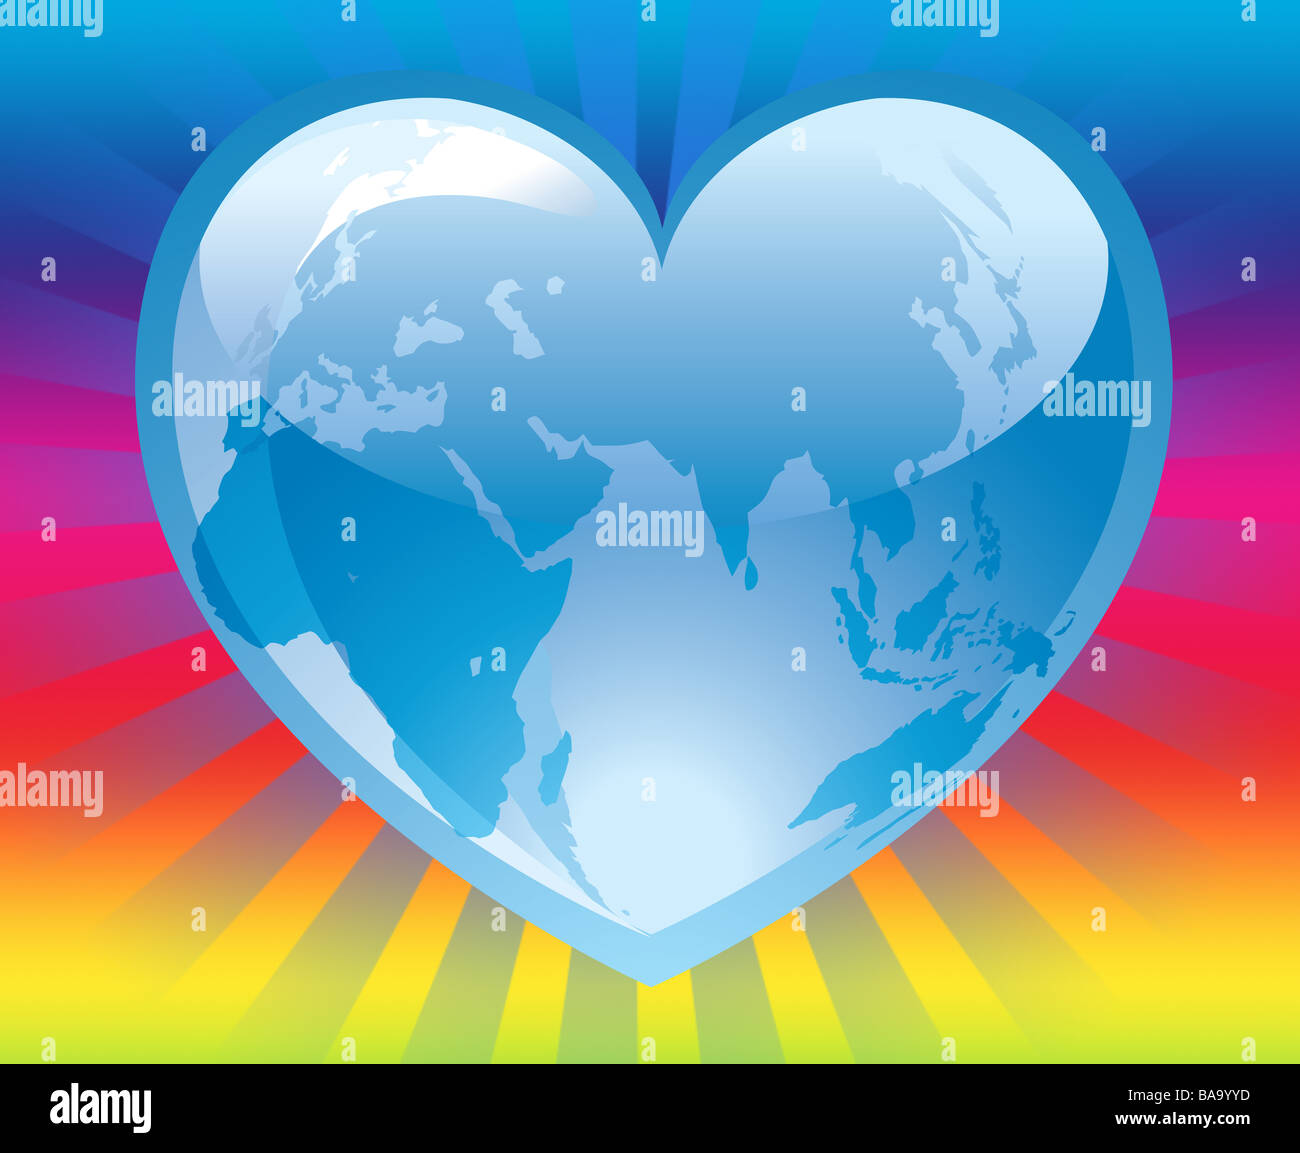 Illustration of the world map inside a blue cool heart on colorful illustration of the world map inside a blue cool heart on colorful light rays background gumiabroncs Choice Image